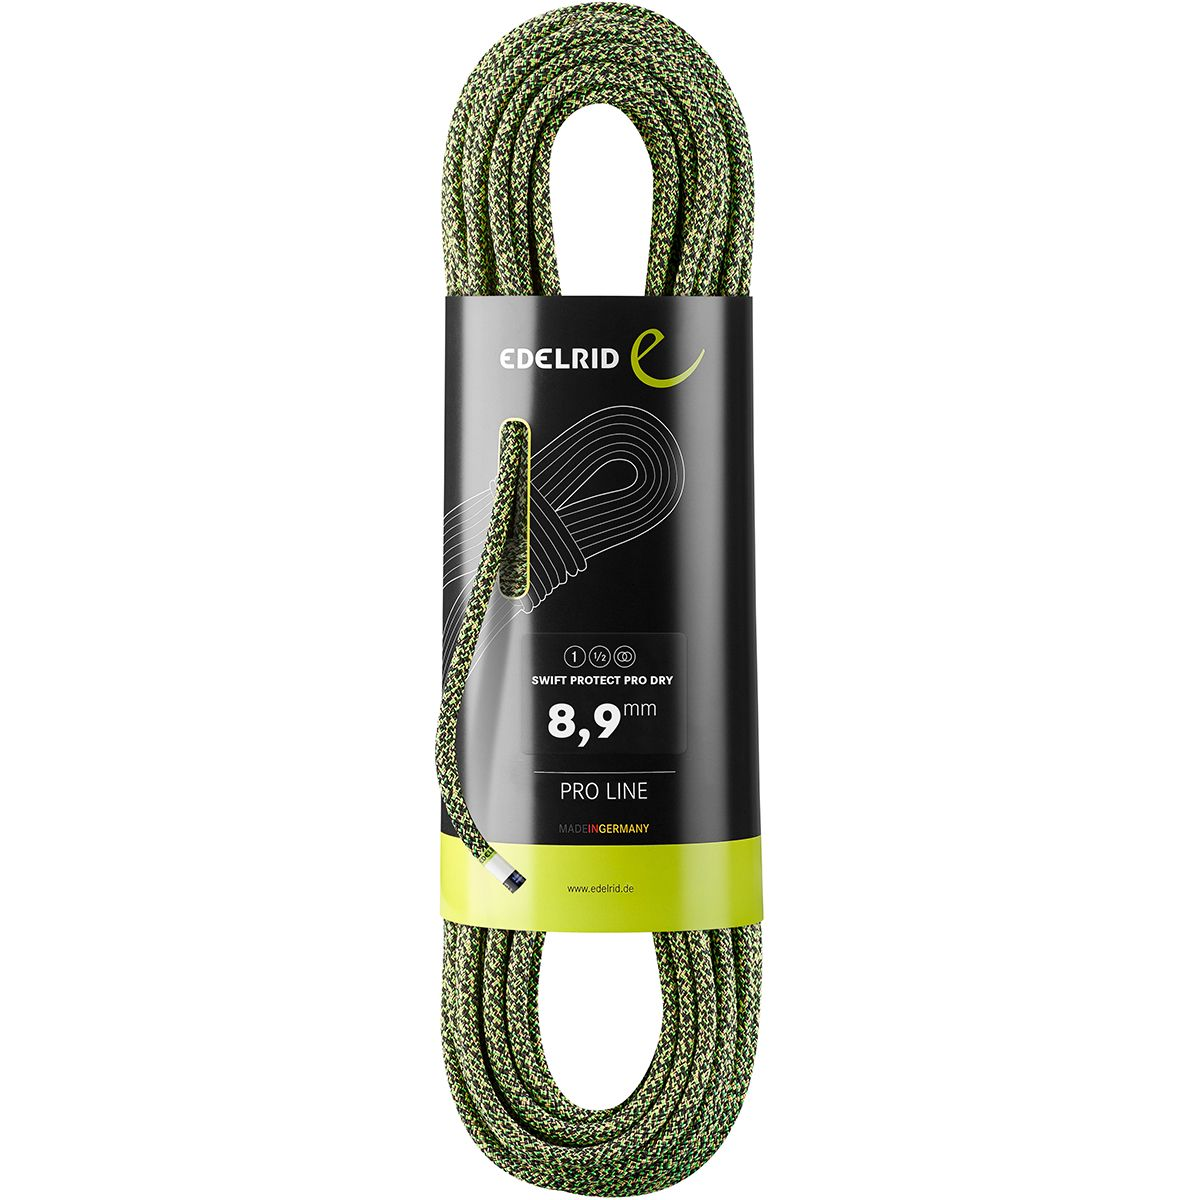 Edelrid Swift Protect Pro Dry 8.9mm x 60m